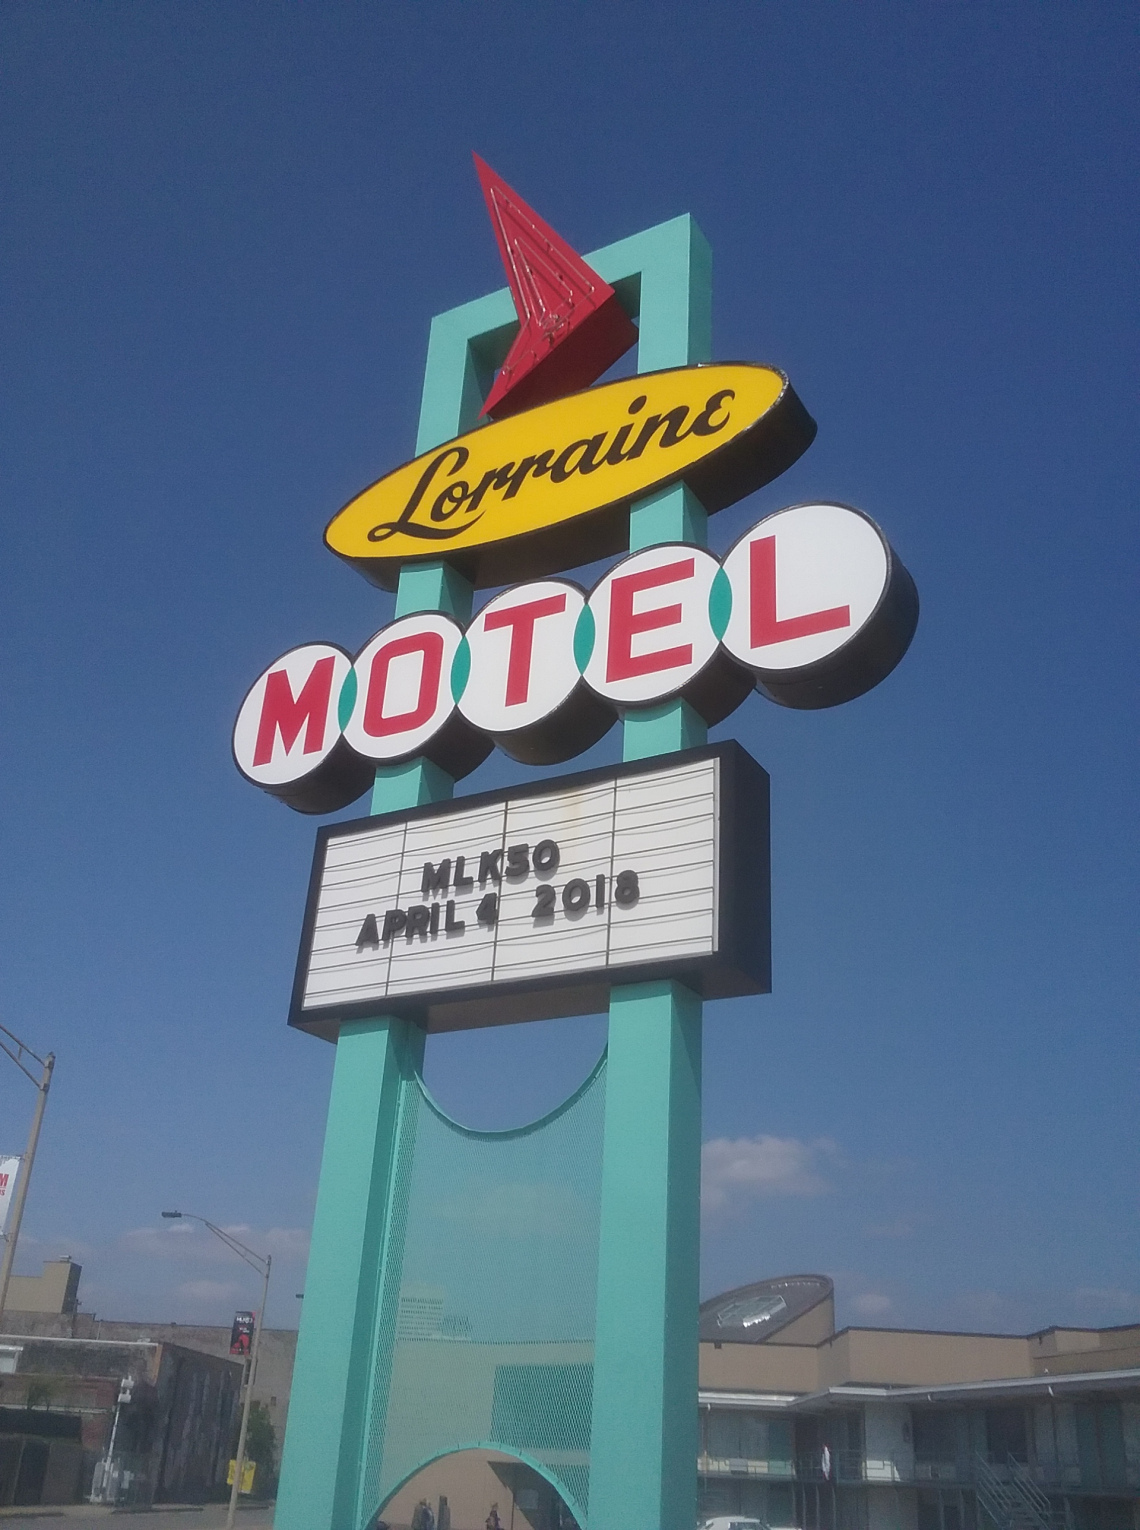 National Civil Rights Museum | Lorraine Motel | MLK 50 | Memphis, Tennessee